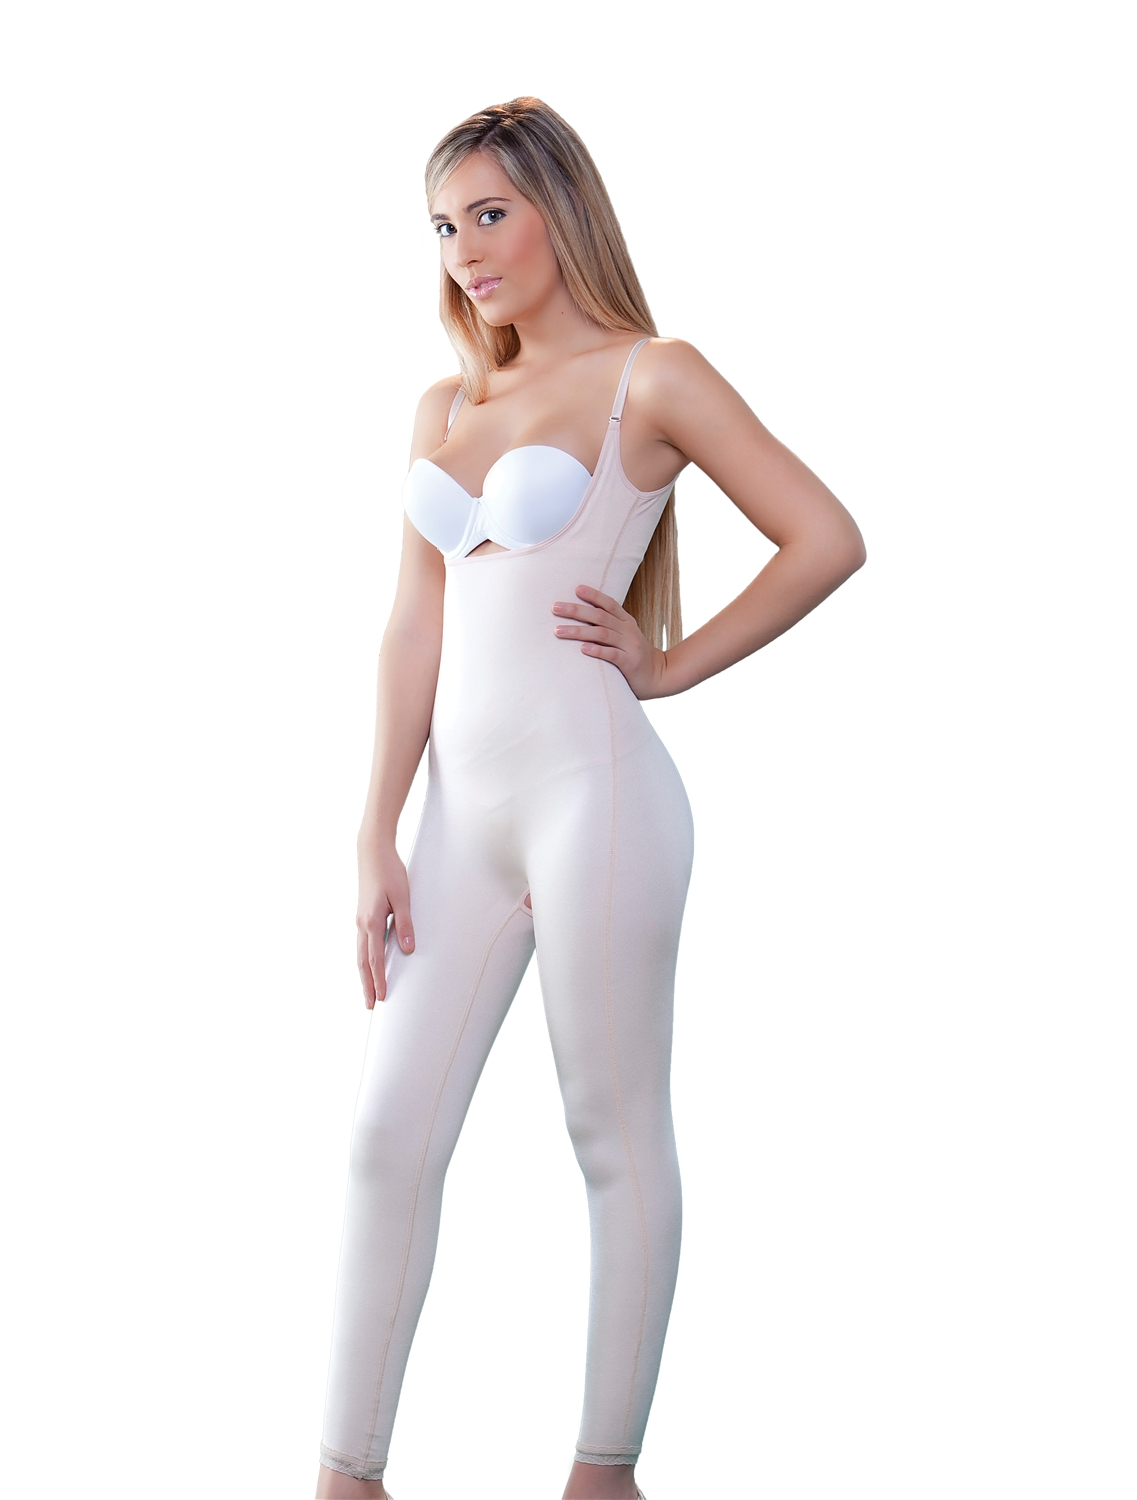 bfbd48c1c53 Long Leg Body Shaper · Larger Photo ...